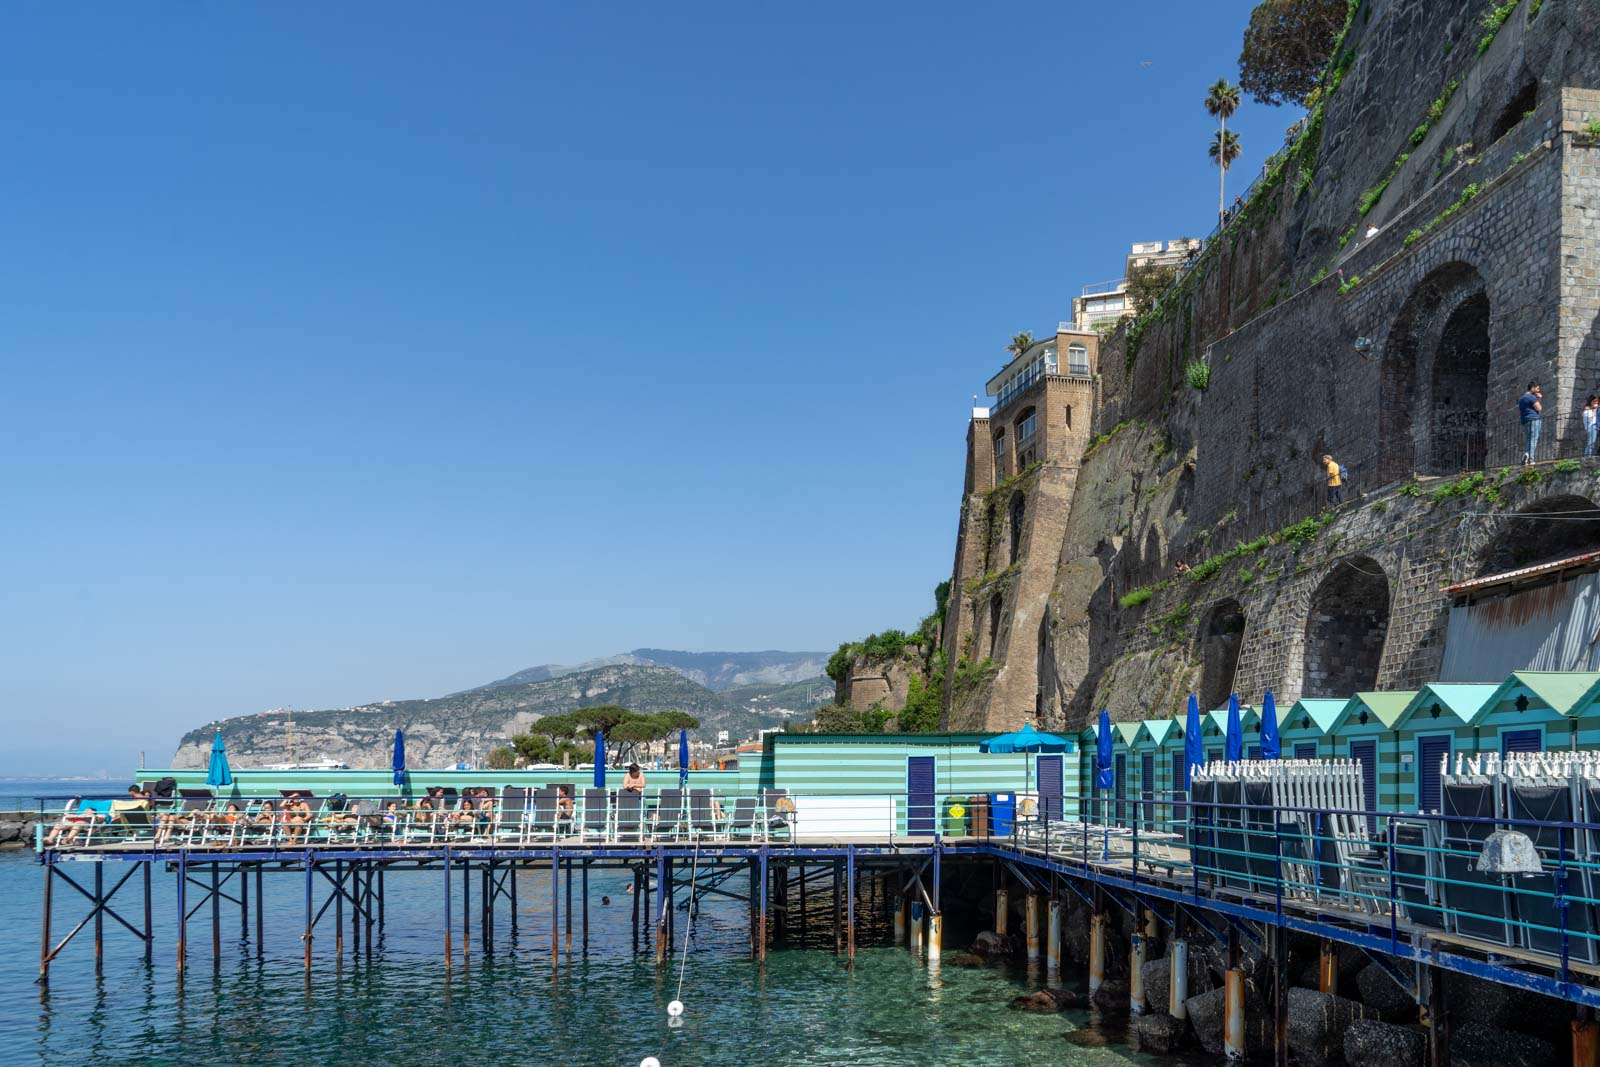 Naples to Sorrento Amalfi Coast day trip